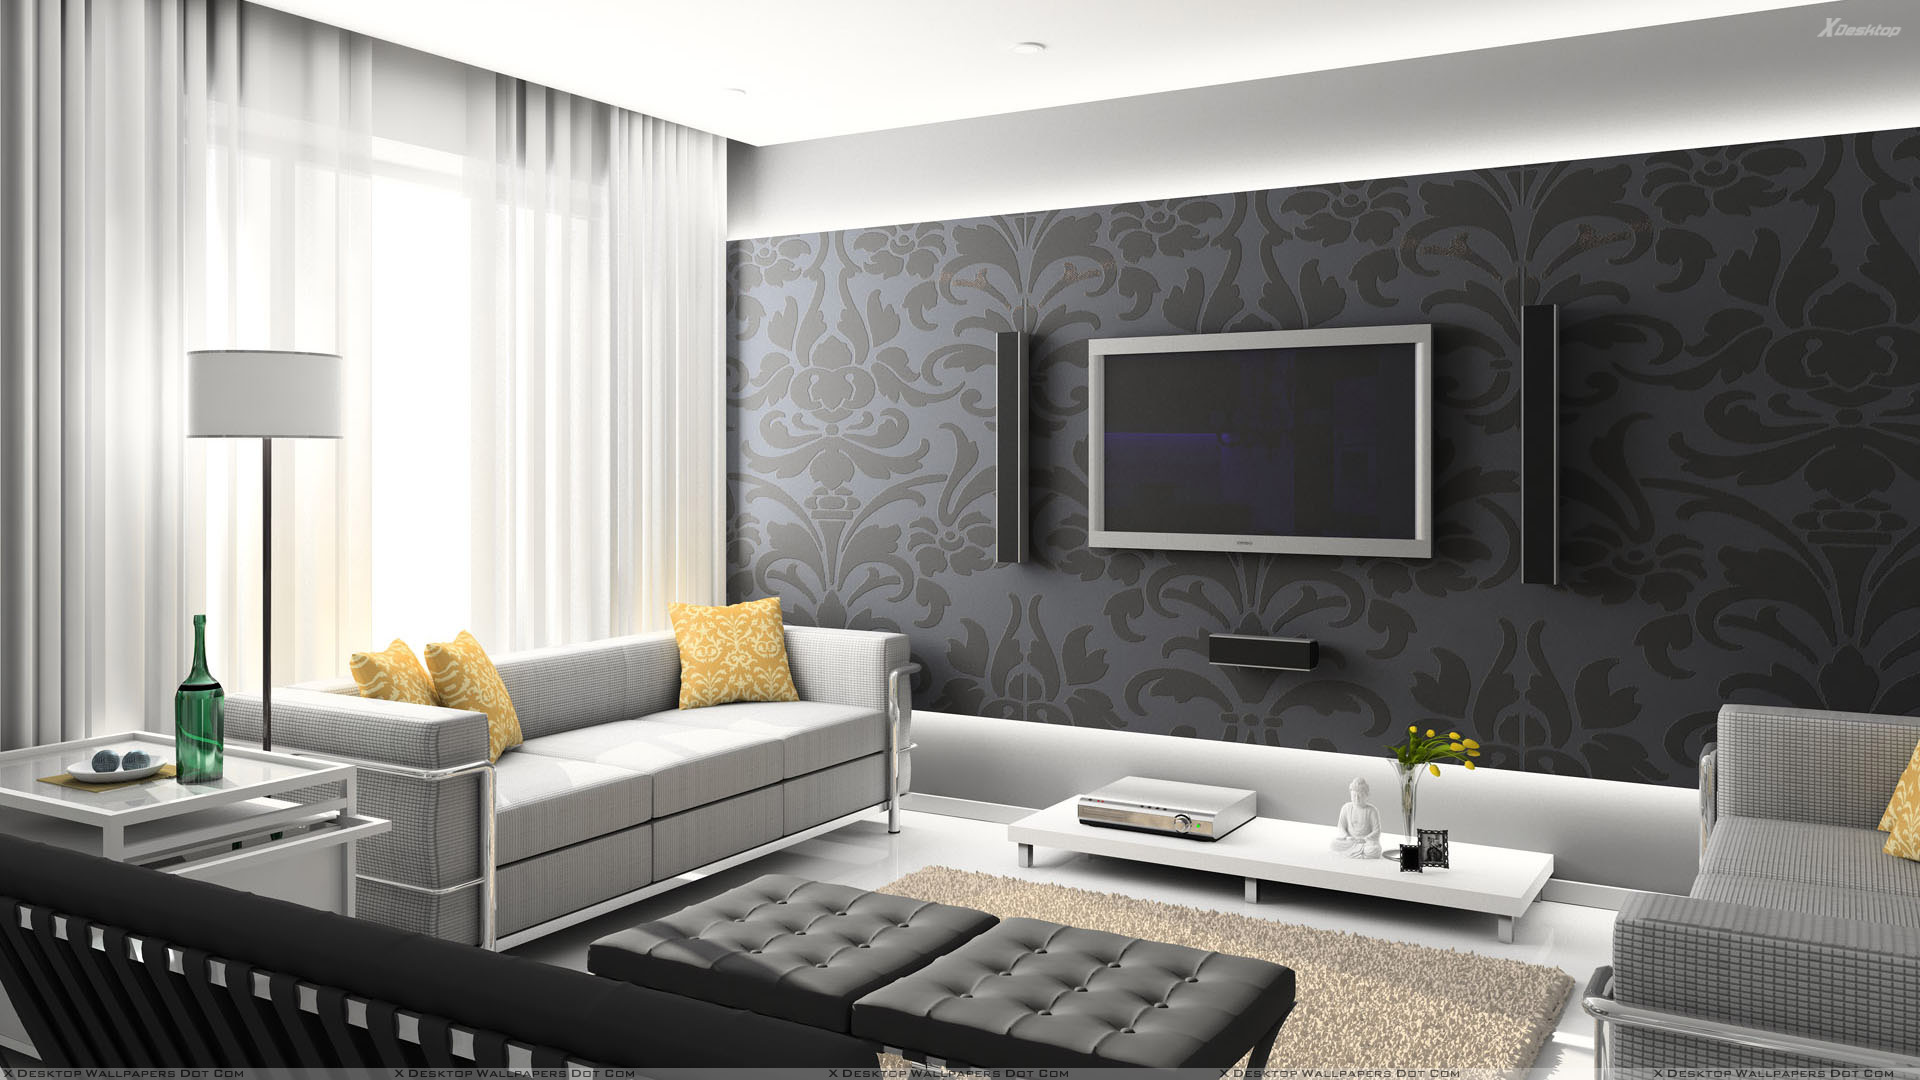 Black Digital Interior And Home Theater Room Wallpaper